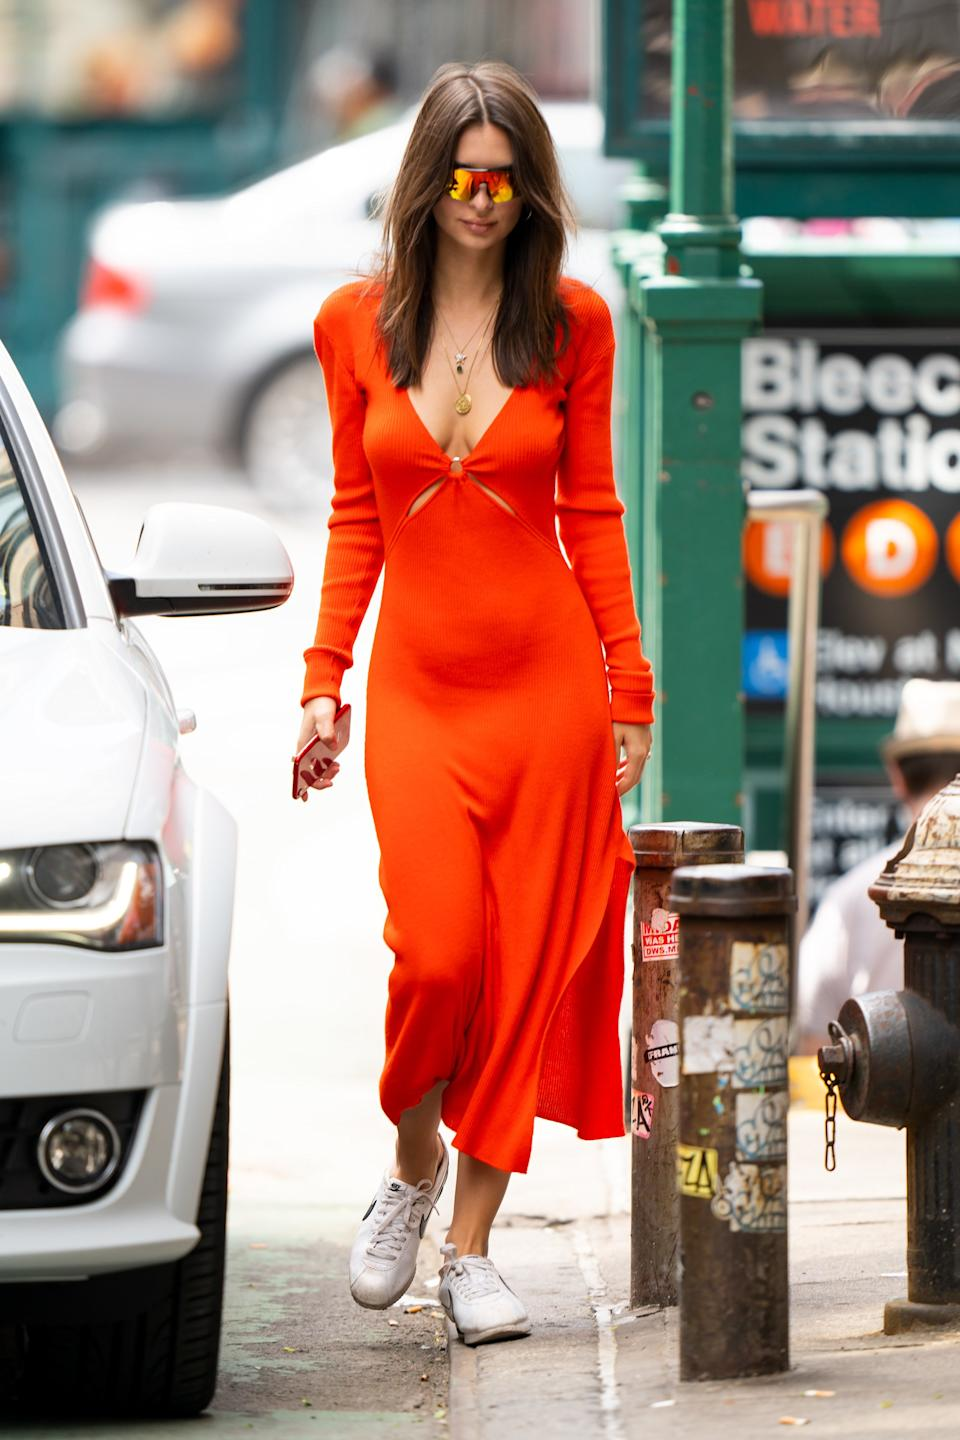 """<h1 class=""""title"""">EXCLUSIVE: Emily Ratajkowski stuns in a red dress out for a stroll in New York City</h1><cite class=""""credit"""">Photo: Splash News</cite>"""